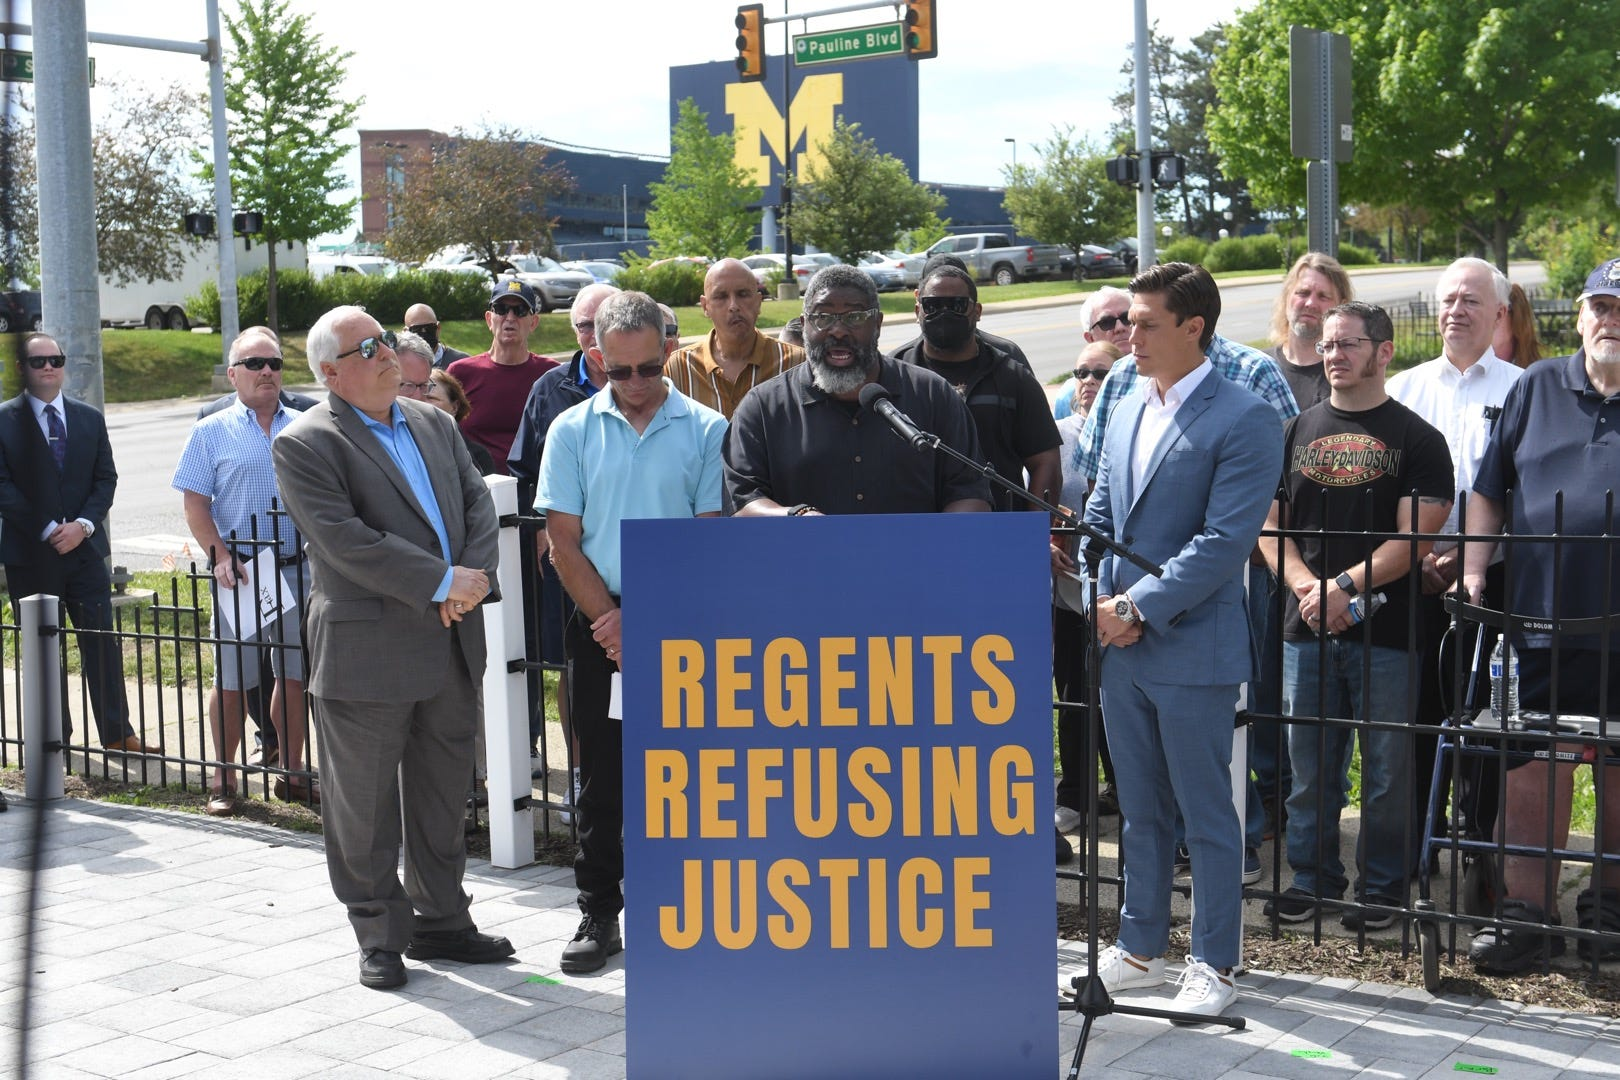 UM adopting new sexual misconduct policies in wake of Anderson